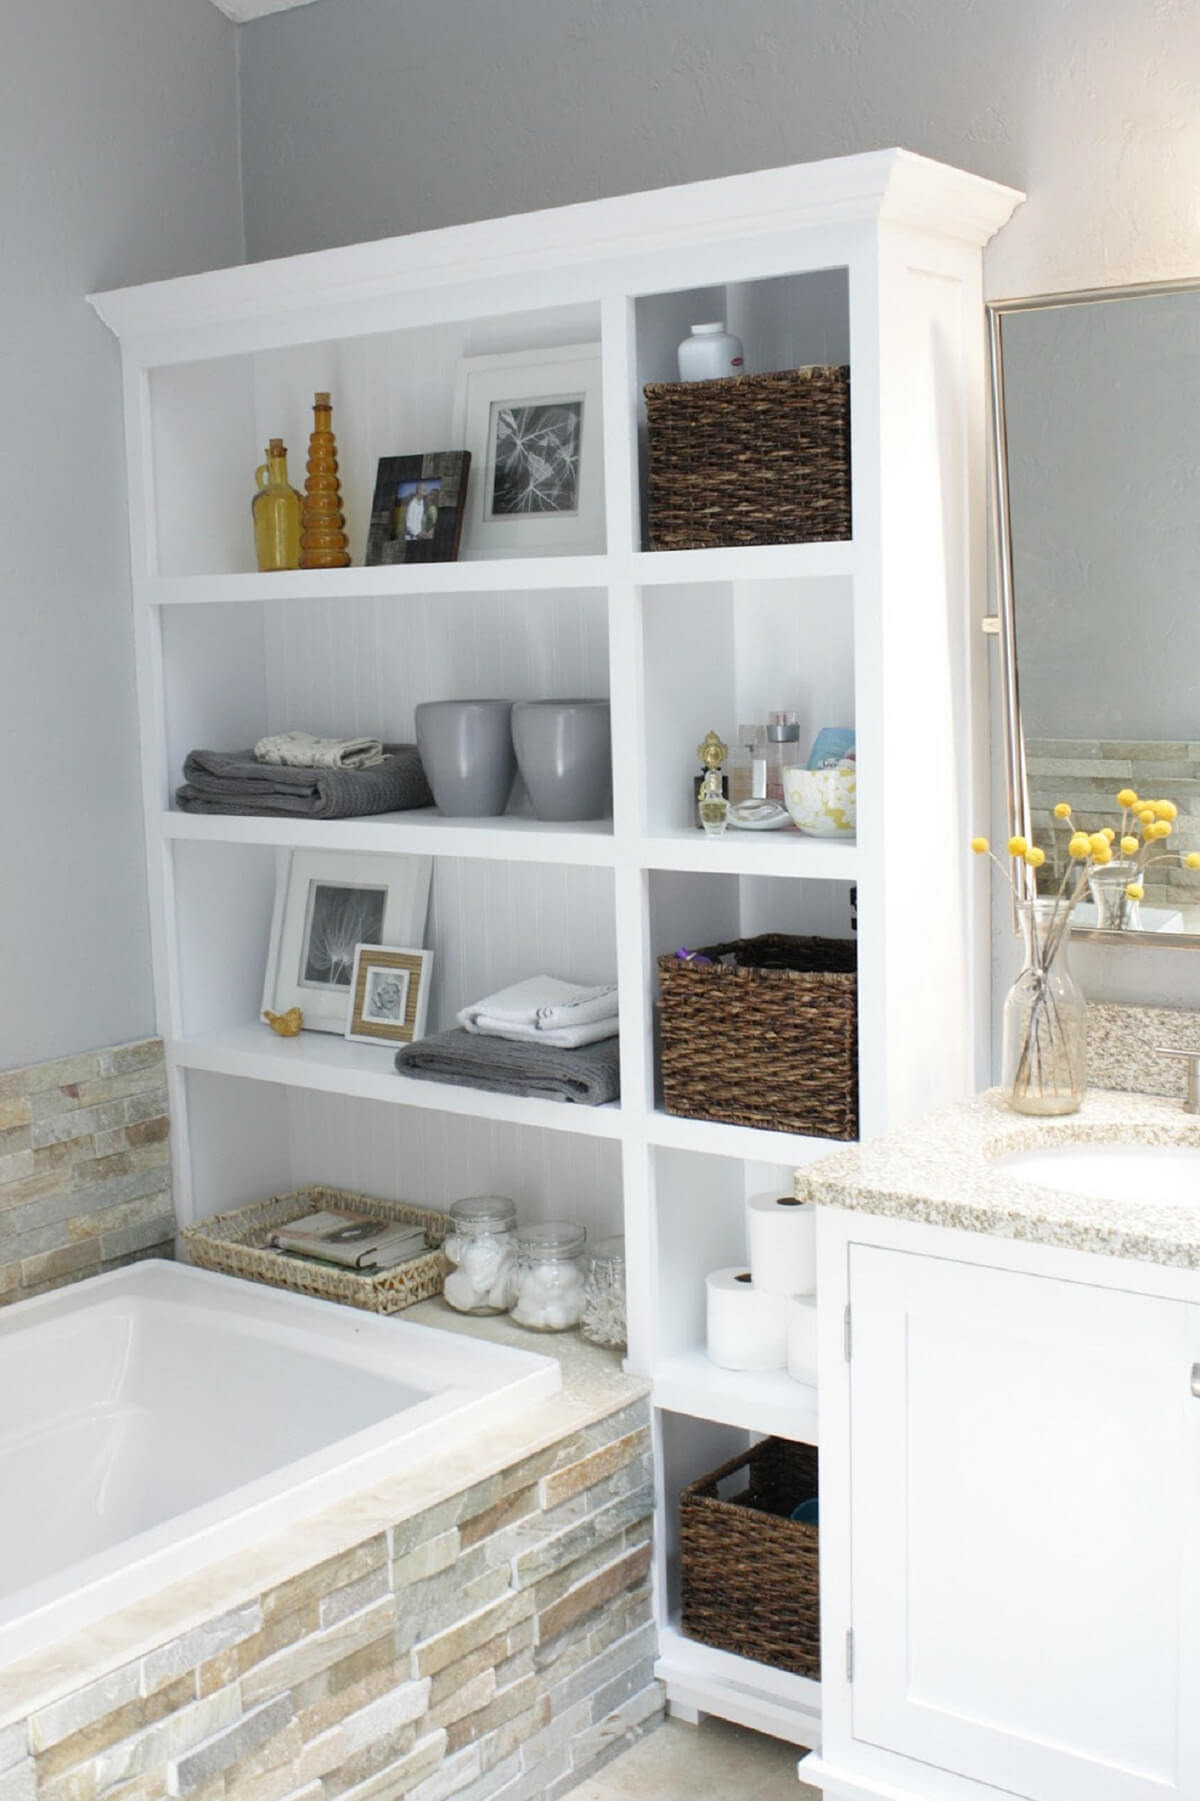 Decorative Bathroom Cabinets Beautiful 44 Best Small Bathroom Storage Ideas and Tips for 2020